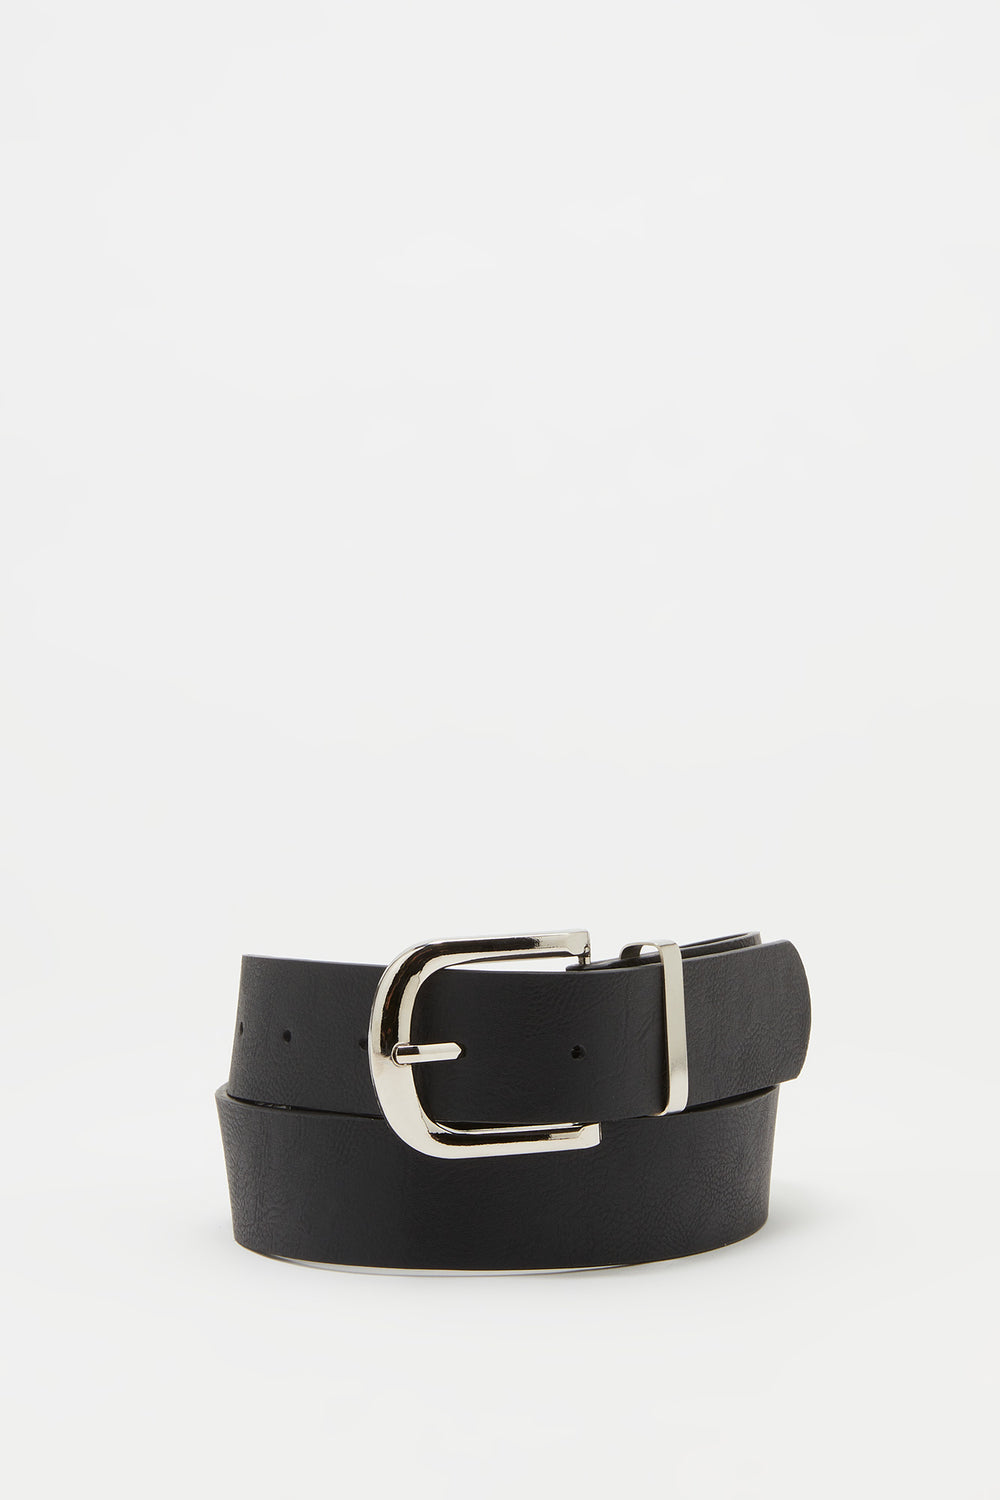 Basic Buckle Belt Solid Black